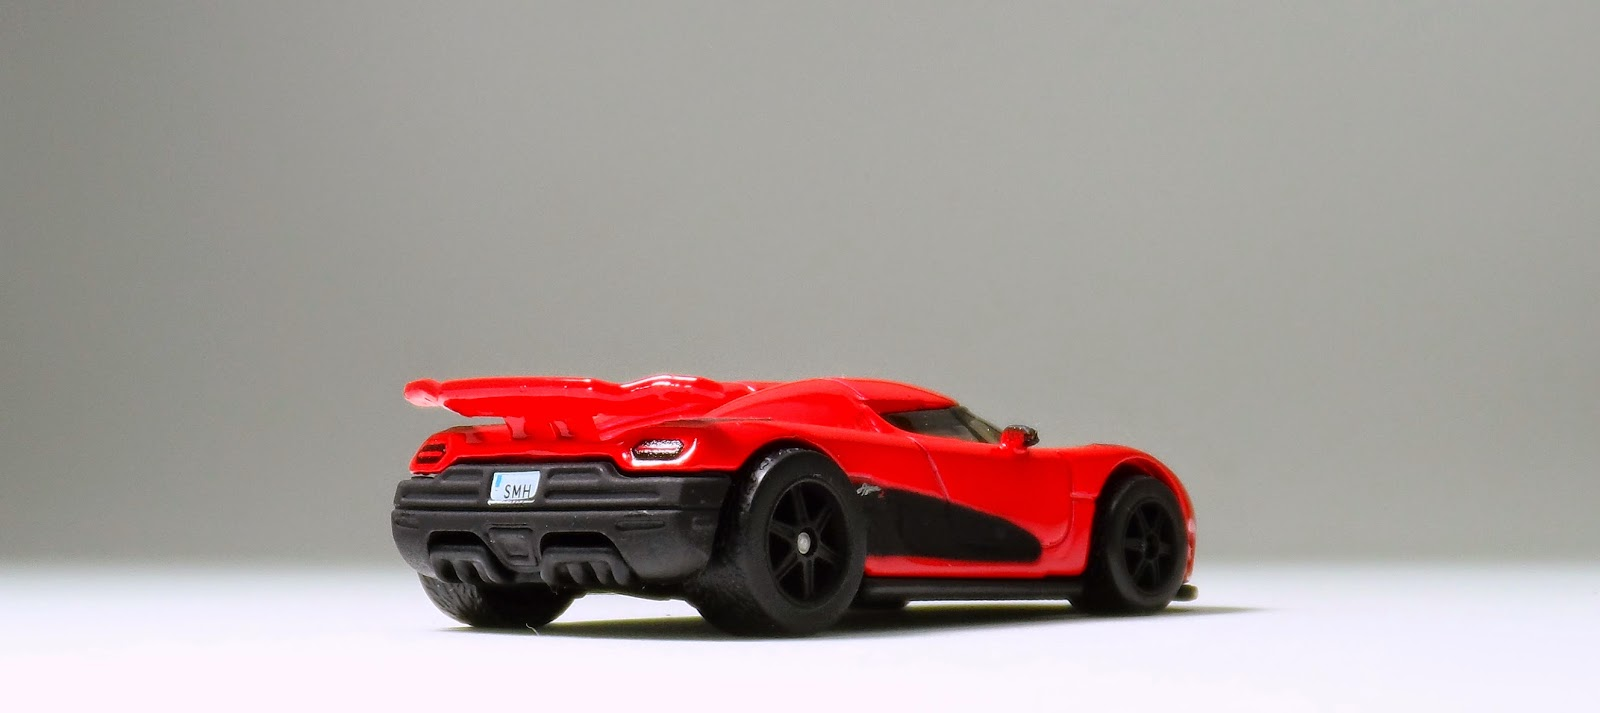 Supercarros: Koenigsegg Agera R (Need For Speed)